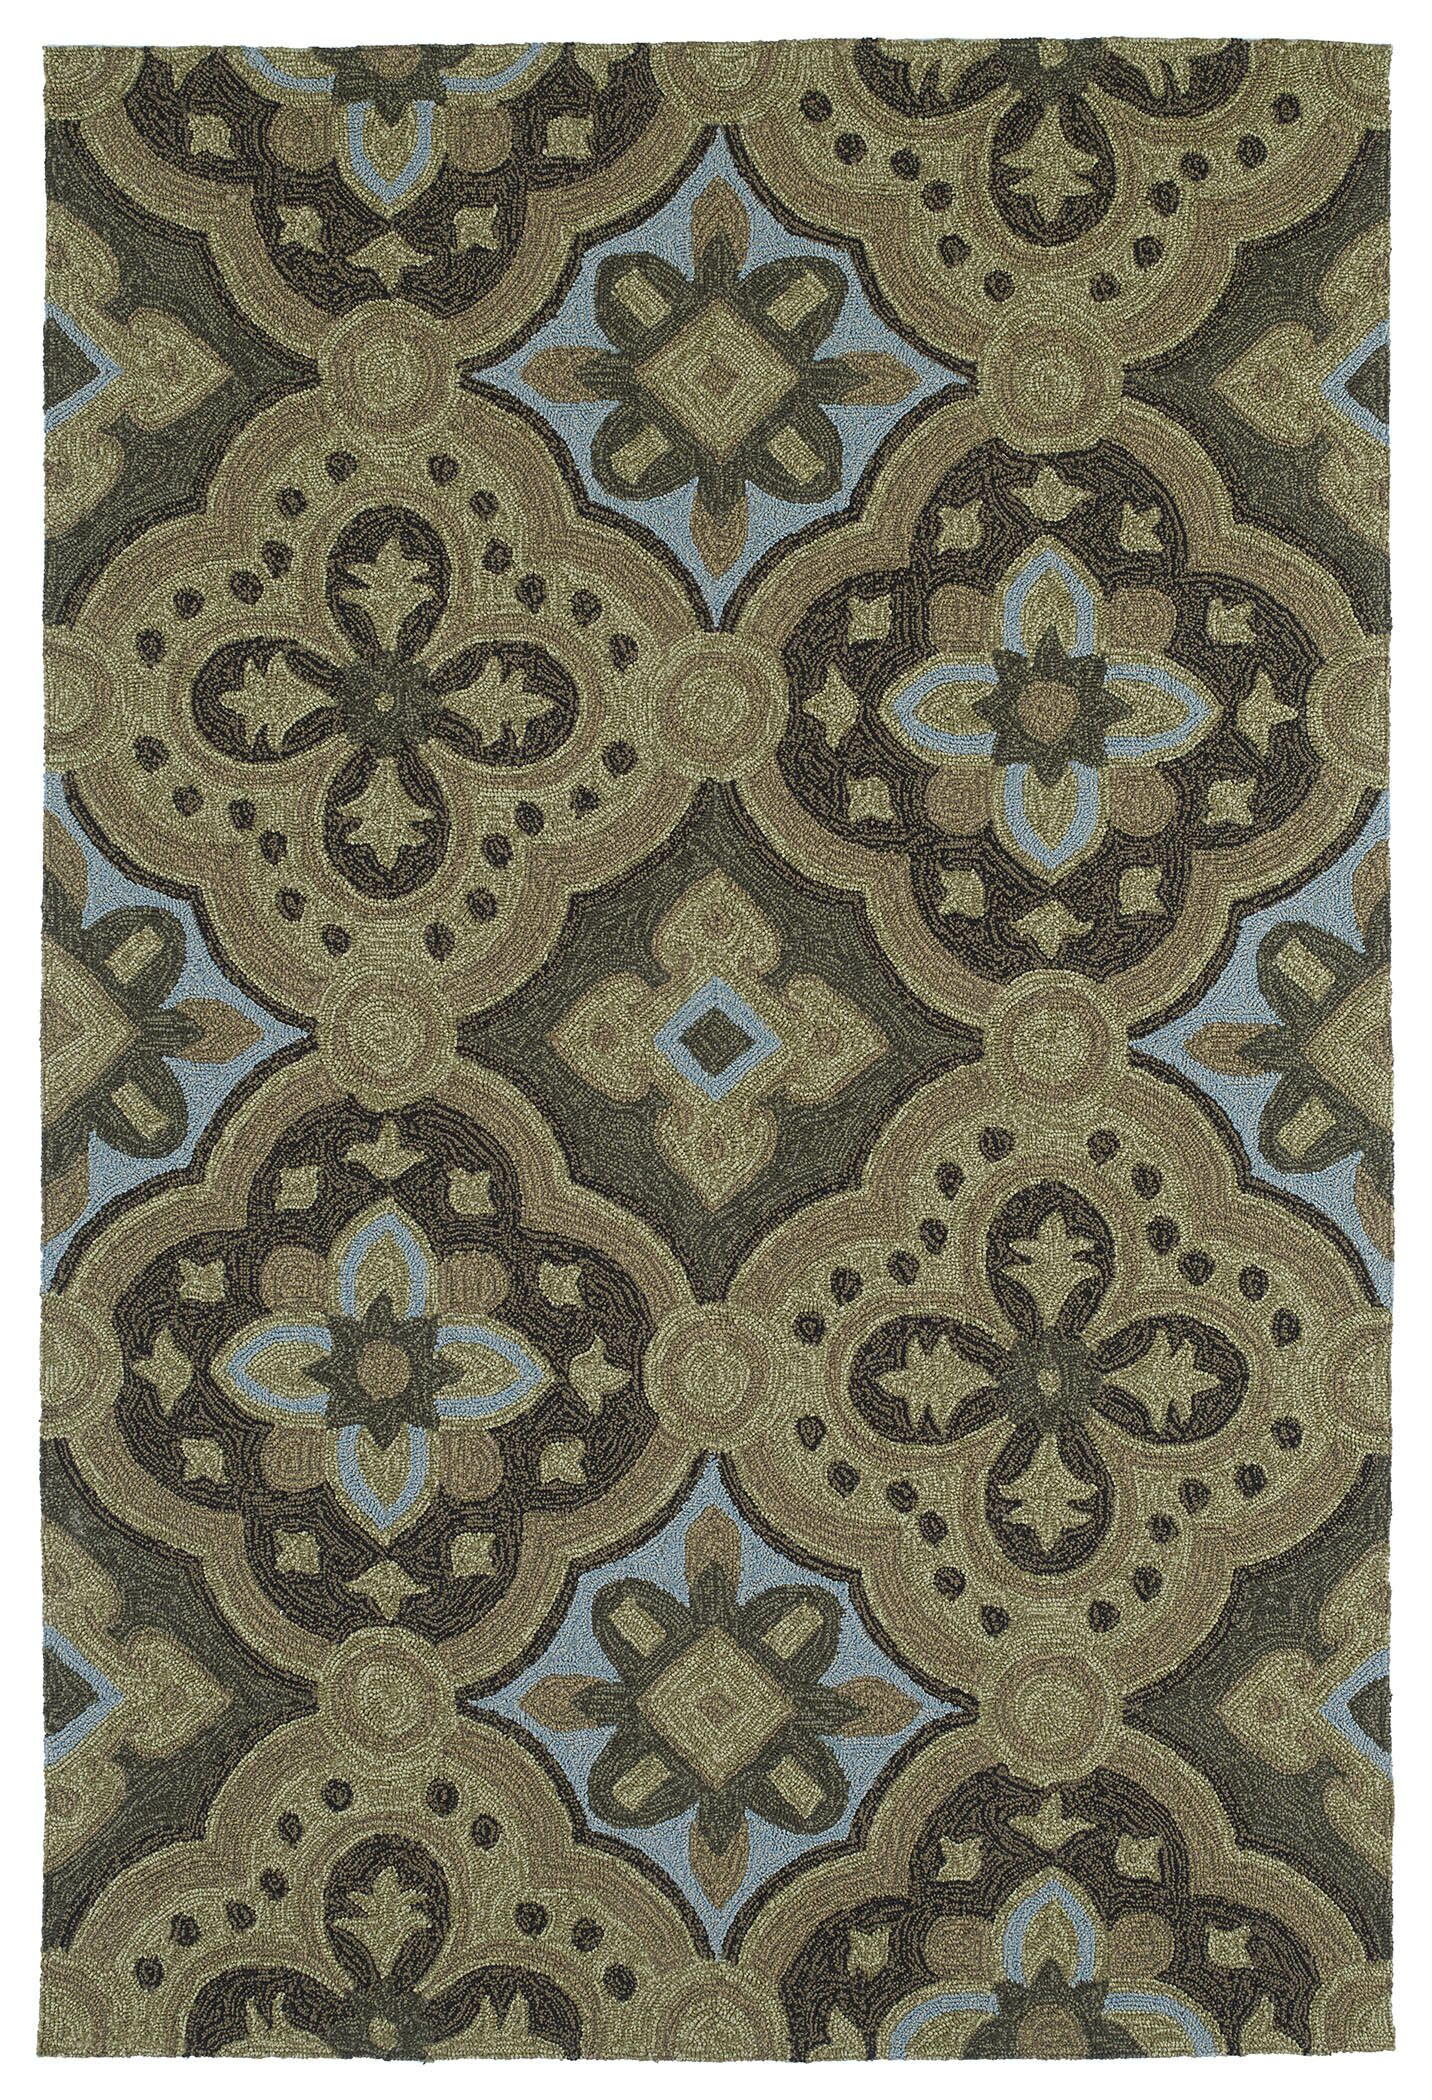 Cavour Mocha Floral Indoor/Outdoor Area Rug Rug Size: Rectangle 9' x 12'